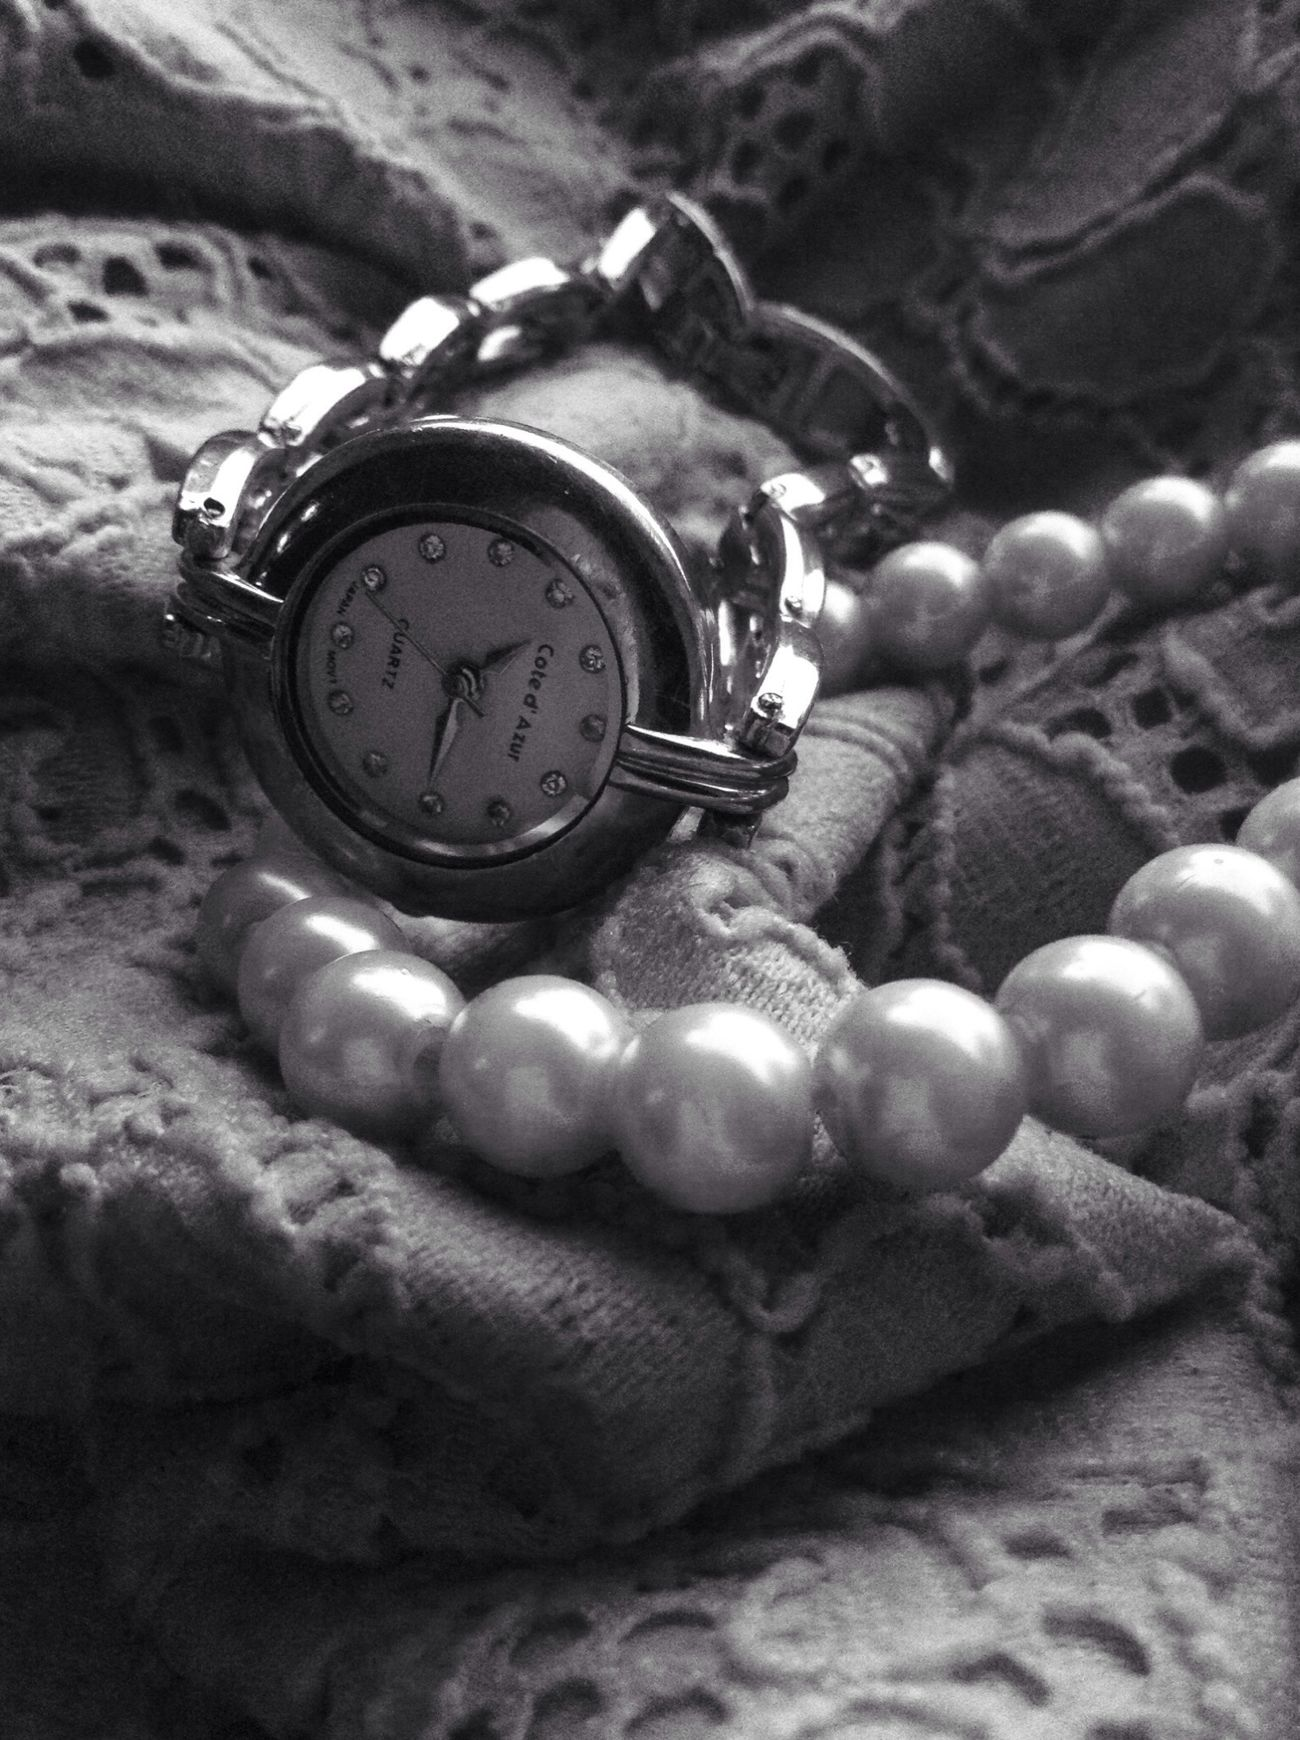 Lace, pearls and silver: a little girly for my taste, but it makes a damn nice B&W. Blackandwhite Watchandpearls Goodmorning :)